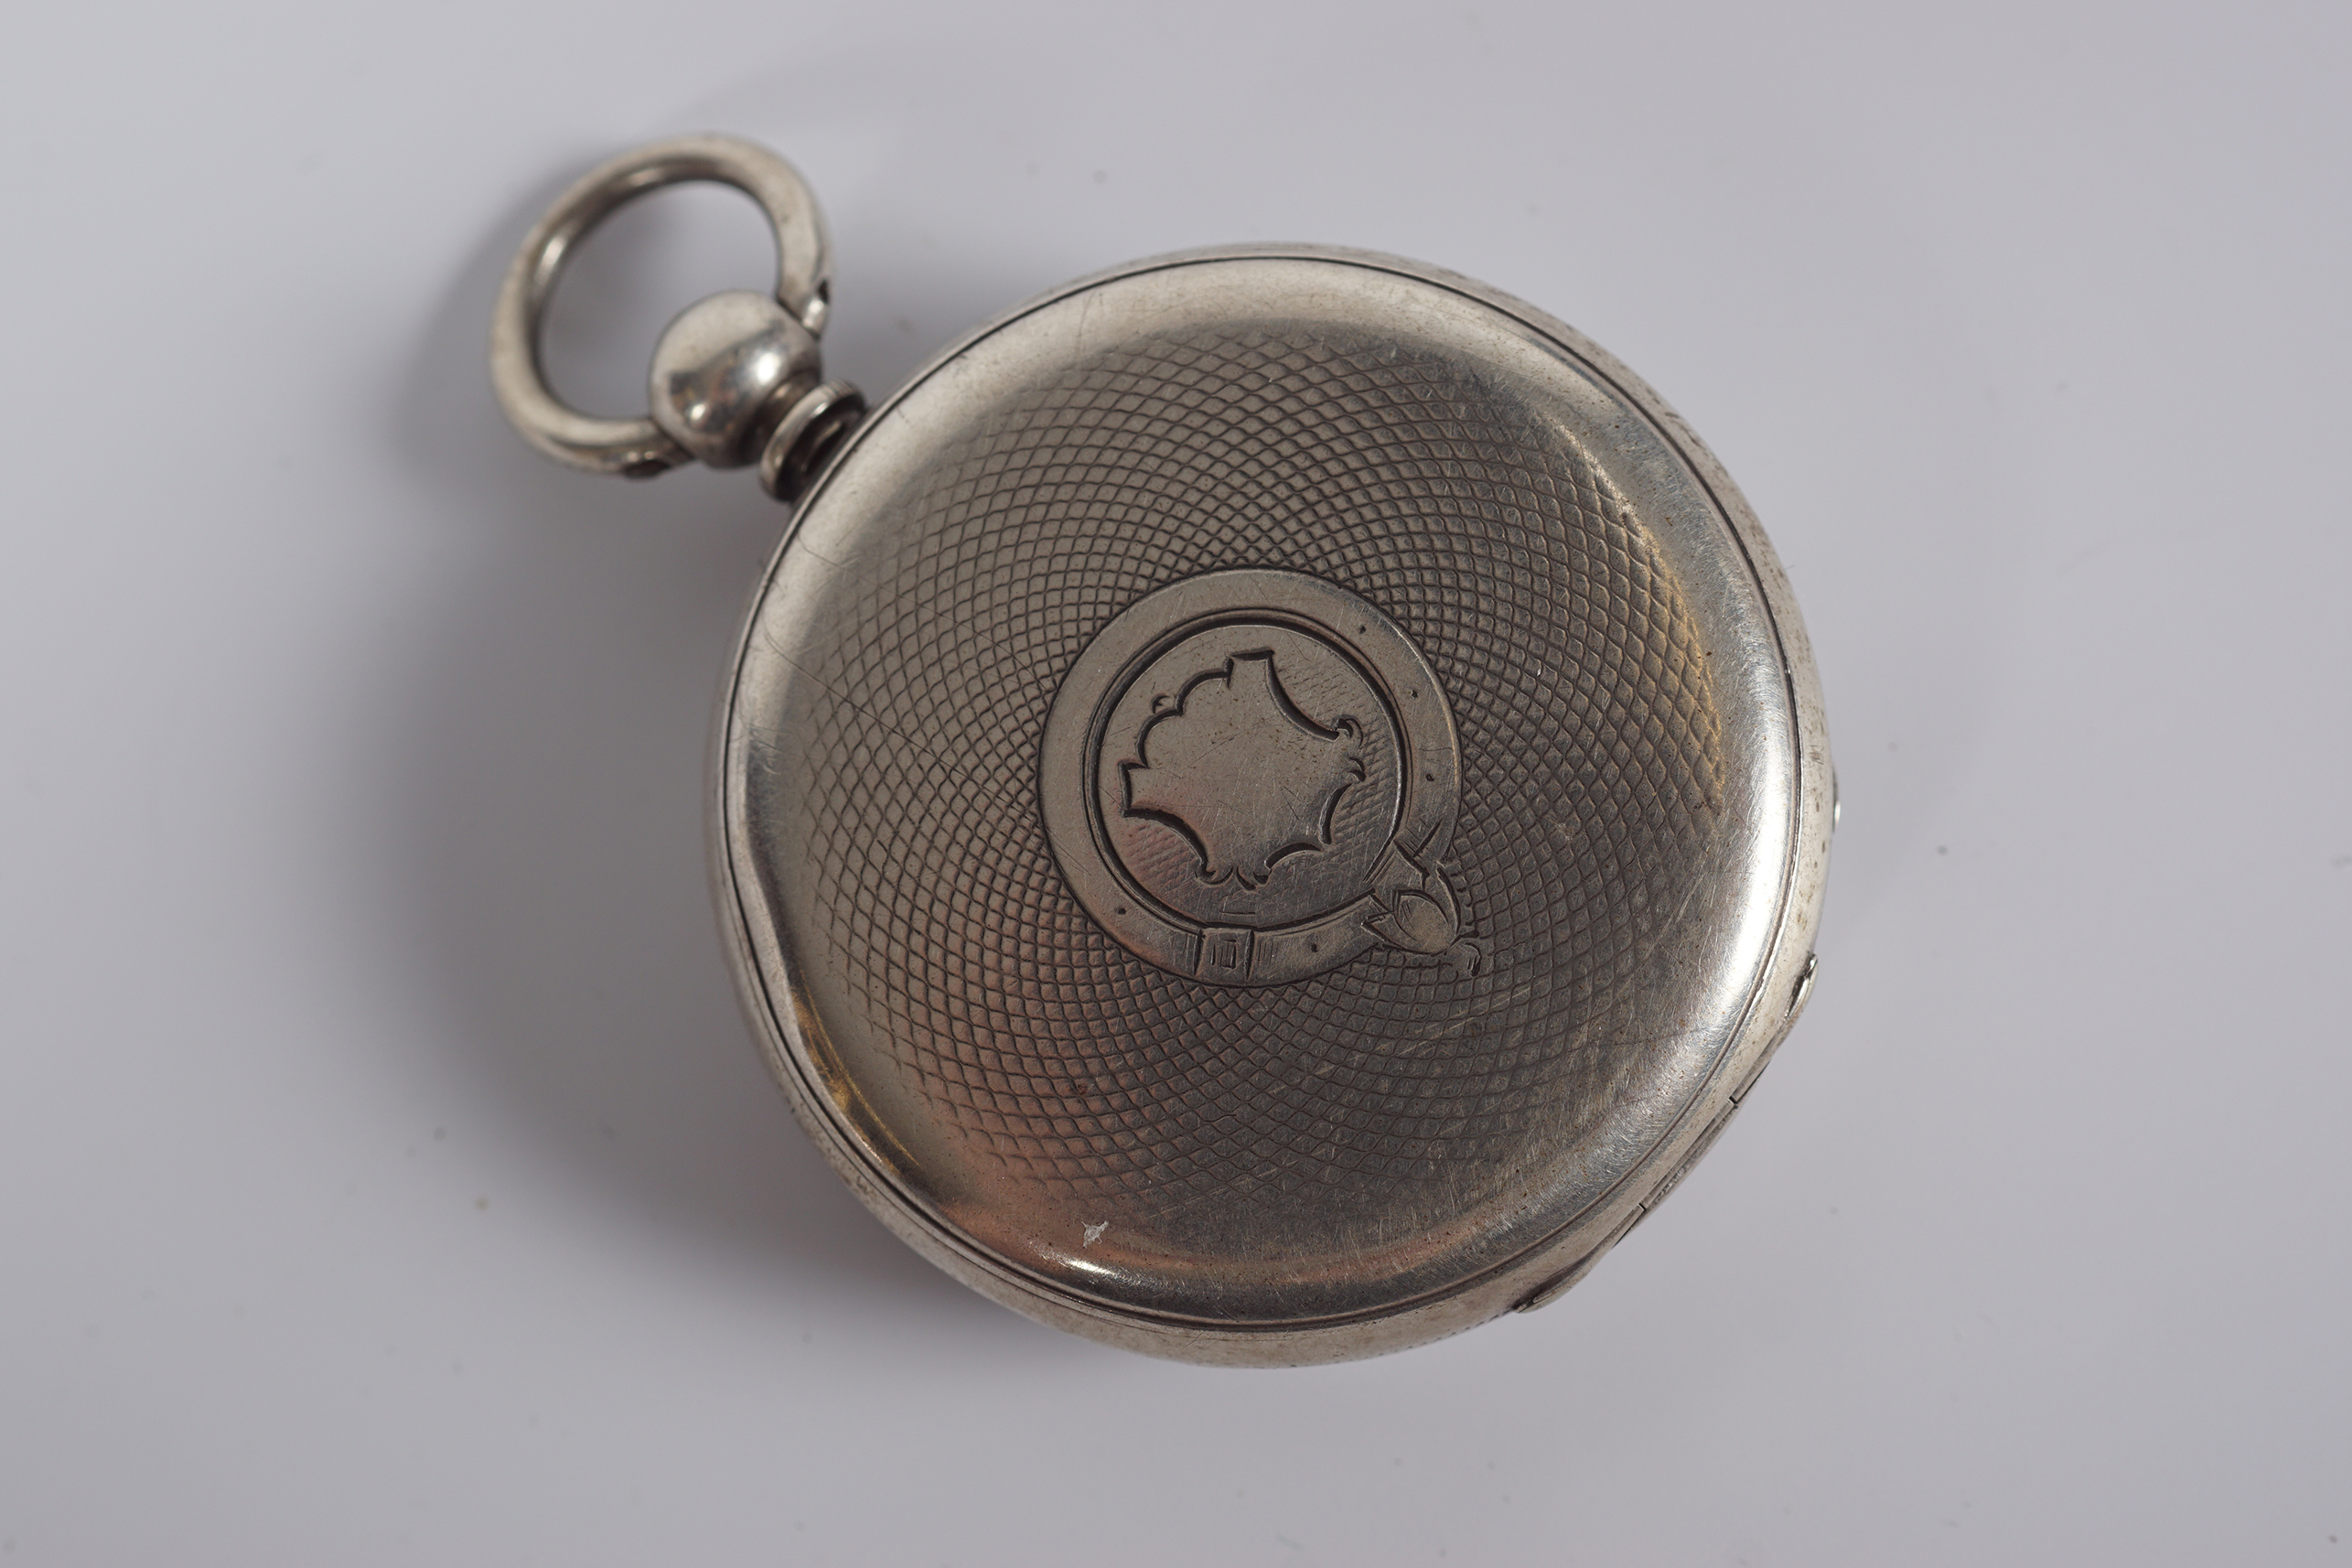 SILVER GENTS POCKET WATCH - Image 3 of 3